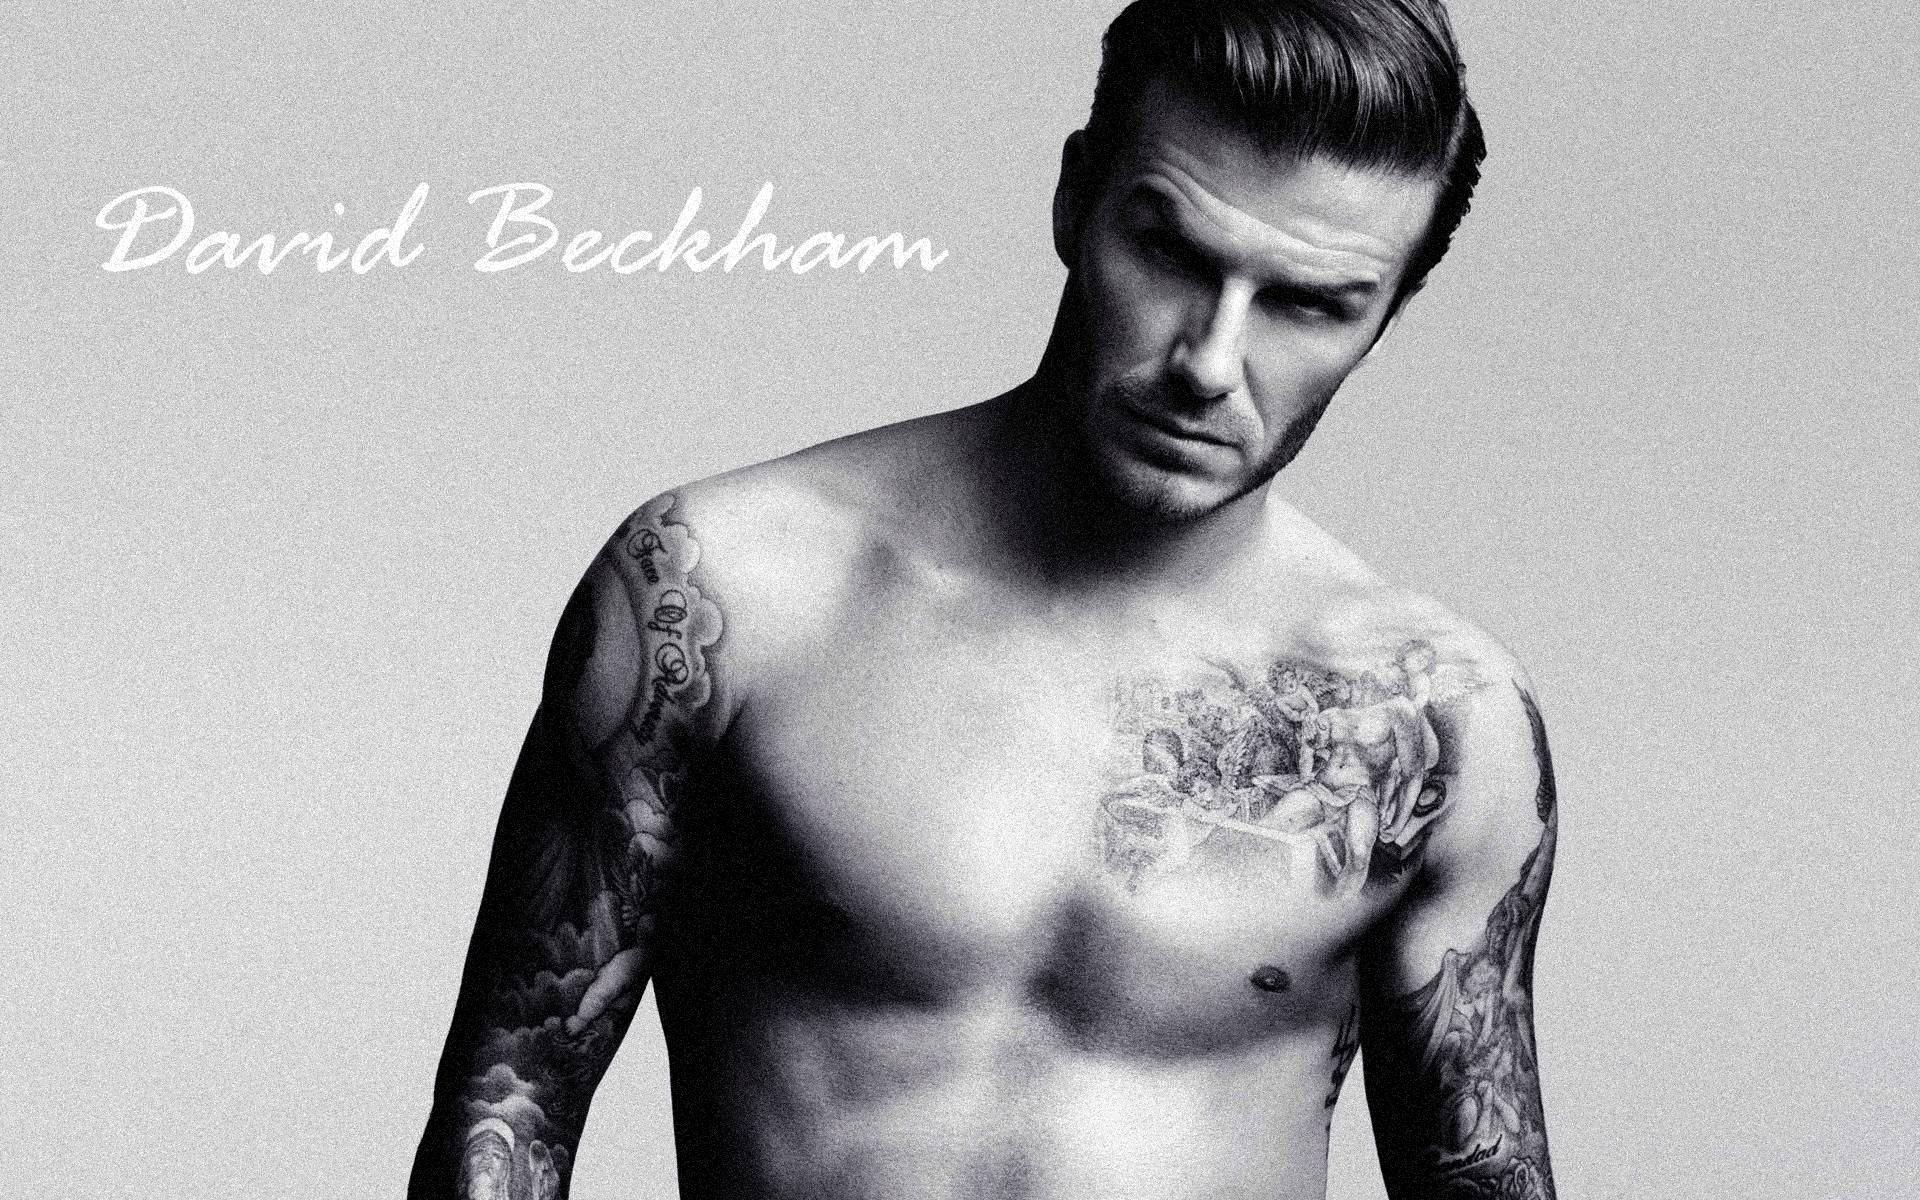 David beckham wallpapers wallpaper cave fonds dcran david beckham tous les wallpapers david beckham voltagebd